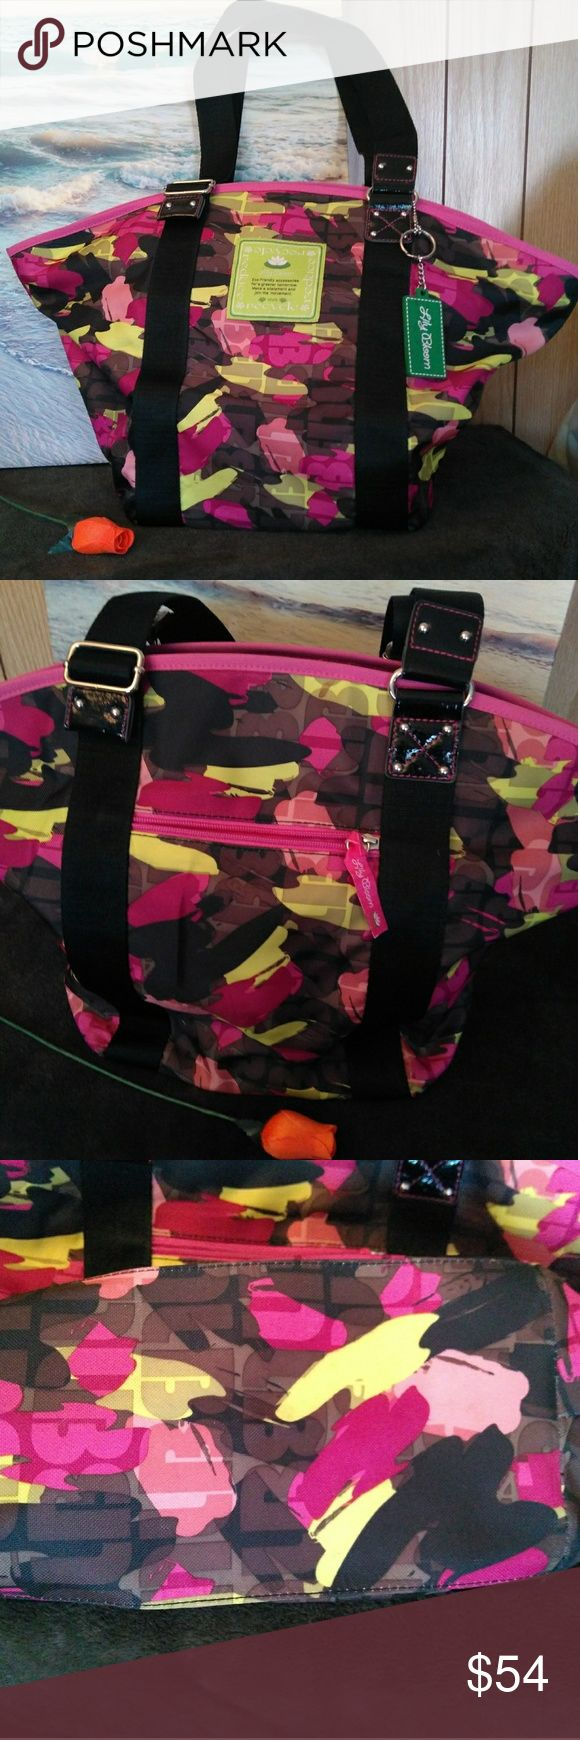 💚NWOT❤️Lily Bloom Tote bag💚 🌷NWOT🌷 Eco-friendly accessories for a greener tomorrow Beautiful Travel Tote  Great to use for a picknic or just to pack up those towels and take a trip to the beach.🏖️ Lily Bloom Bags Totes